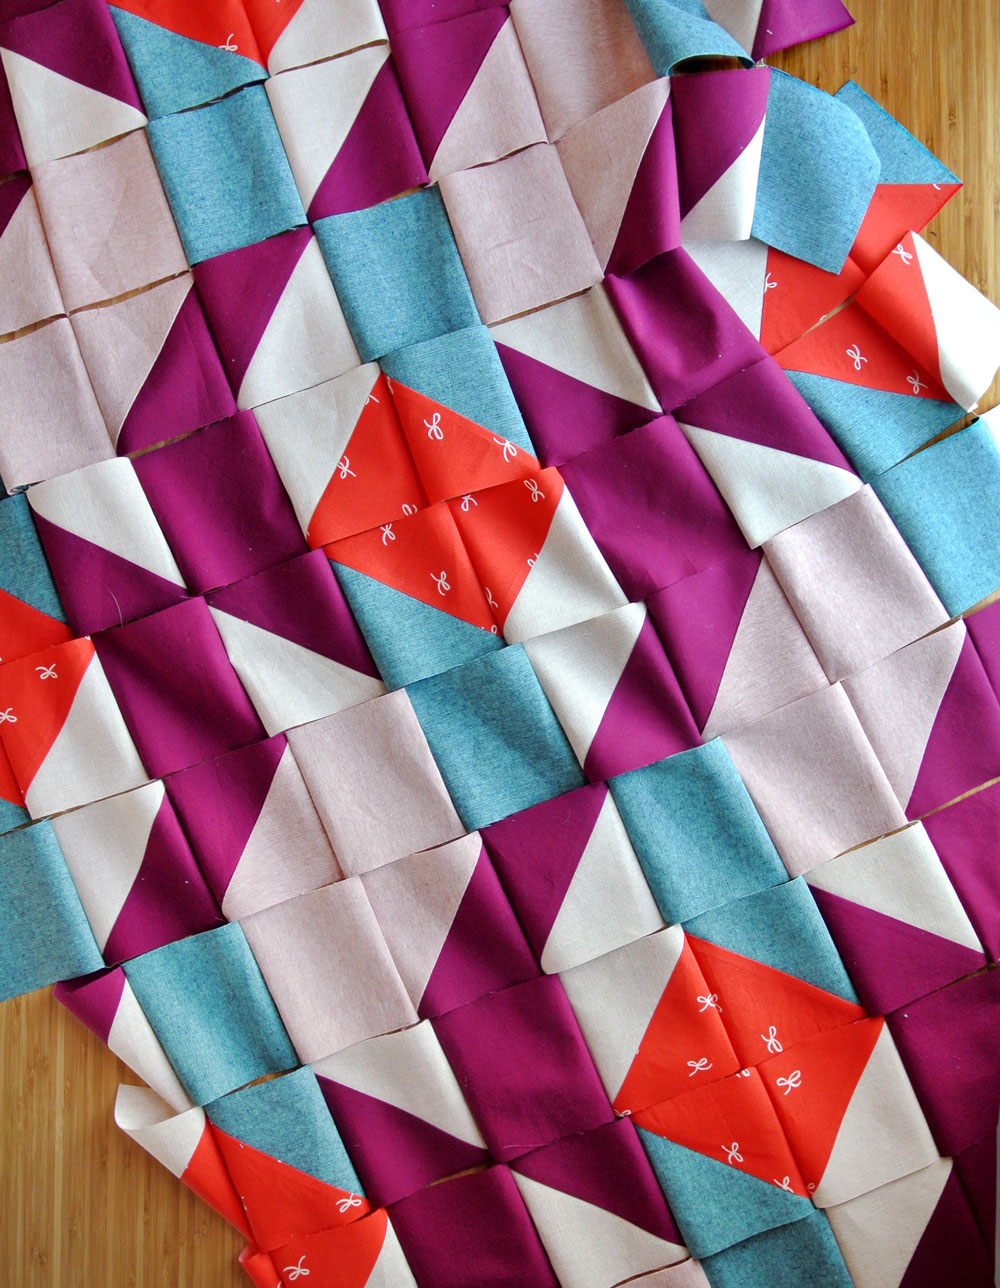 chain-piece-rows-quilting